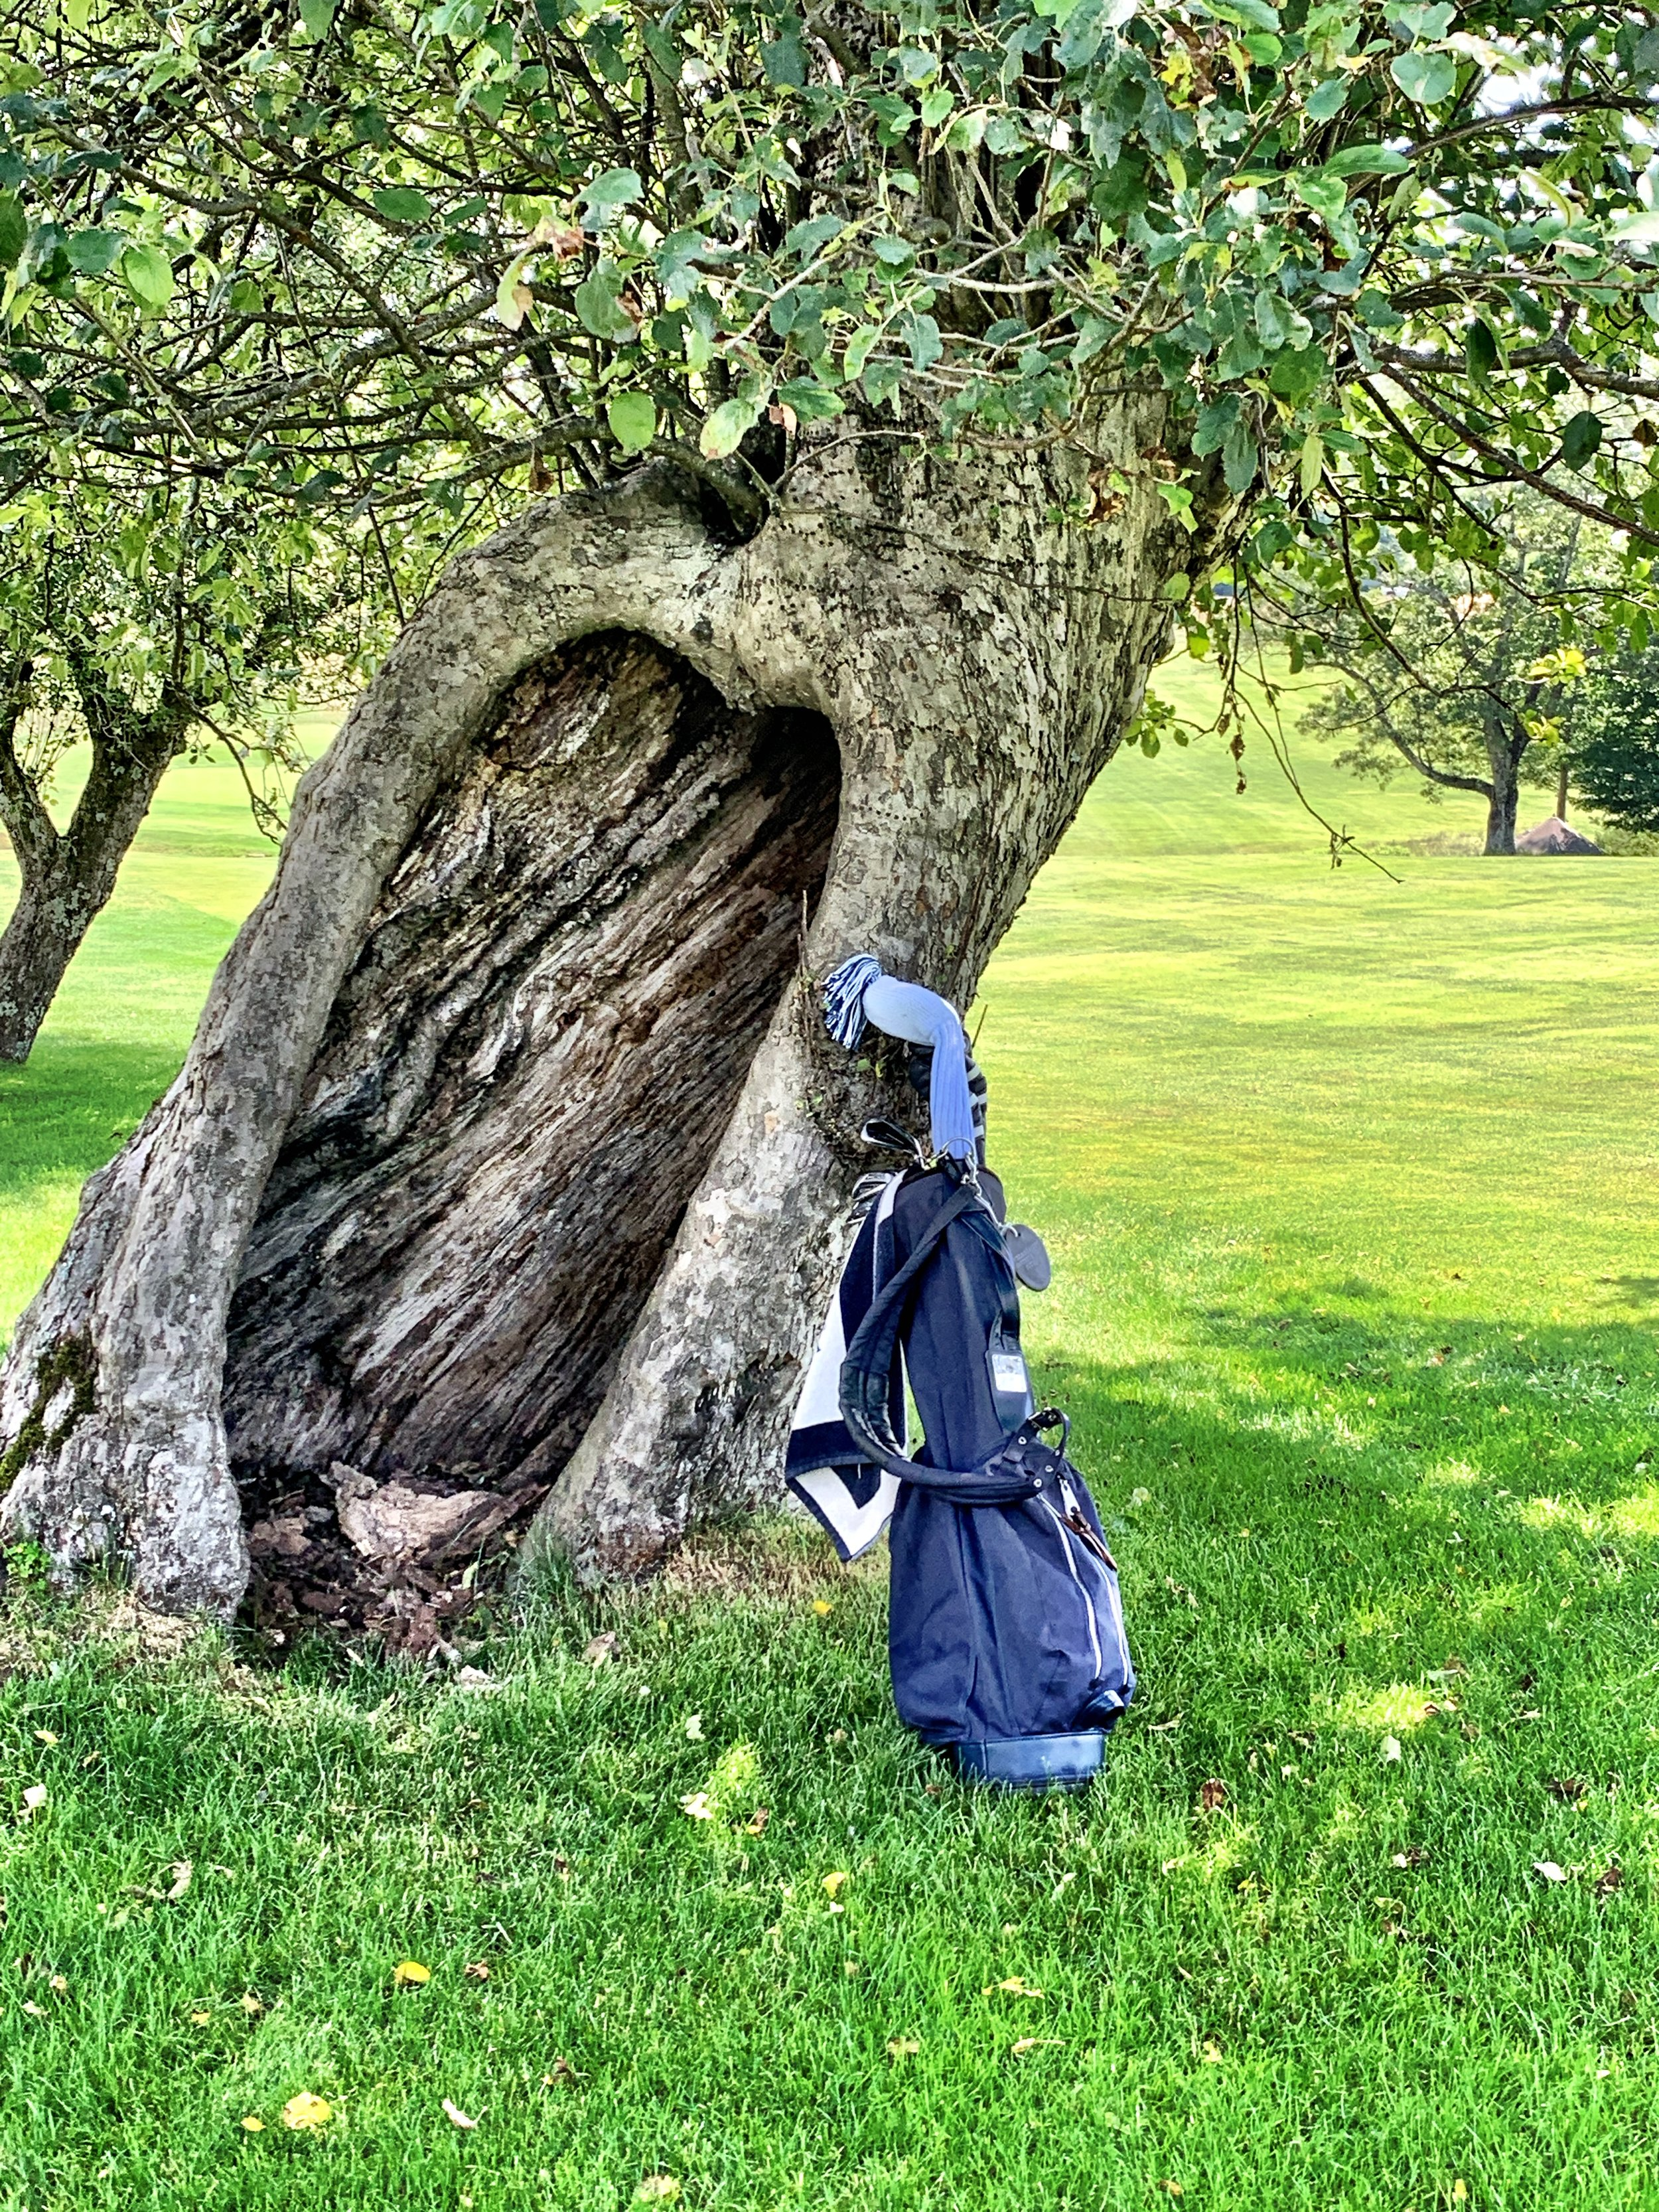 Despite its trunk long-ago being hollowed out, this apple tree alongside the fourteenth fairway still bears fruit every fall. Interesting stuff you learn just sauntering along.